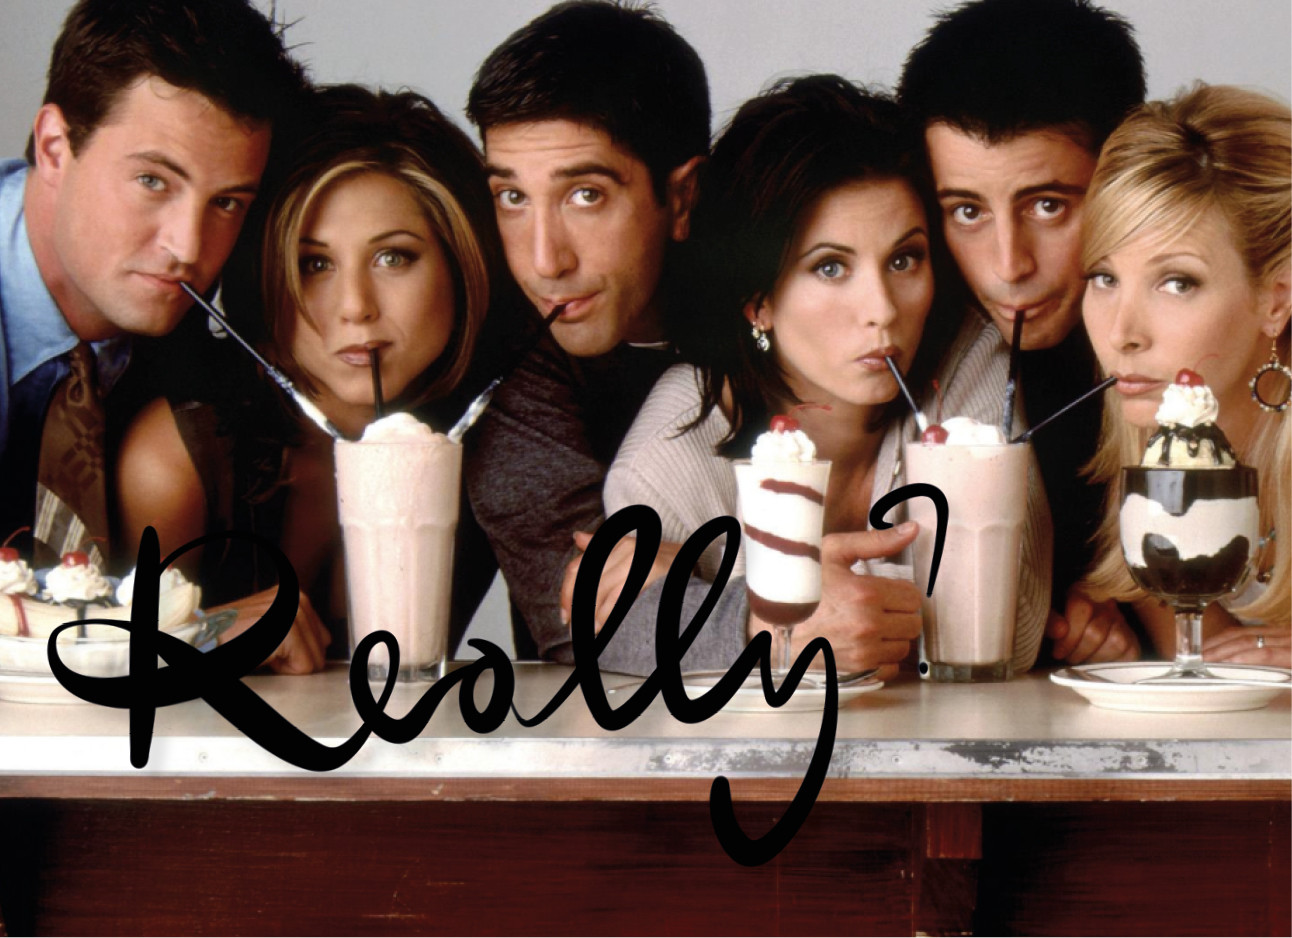 De cast van friends drinken milkshakes met de tekst really?